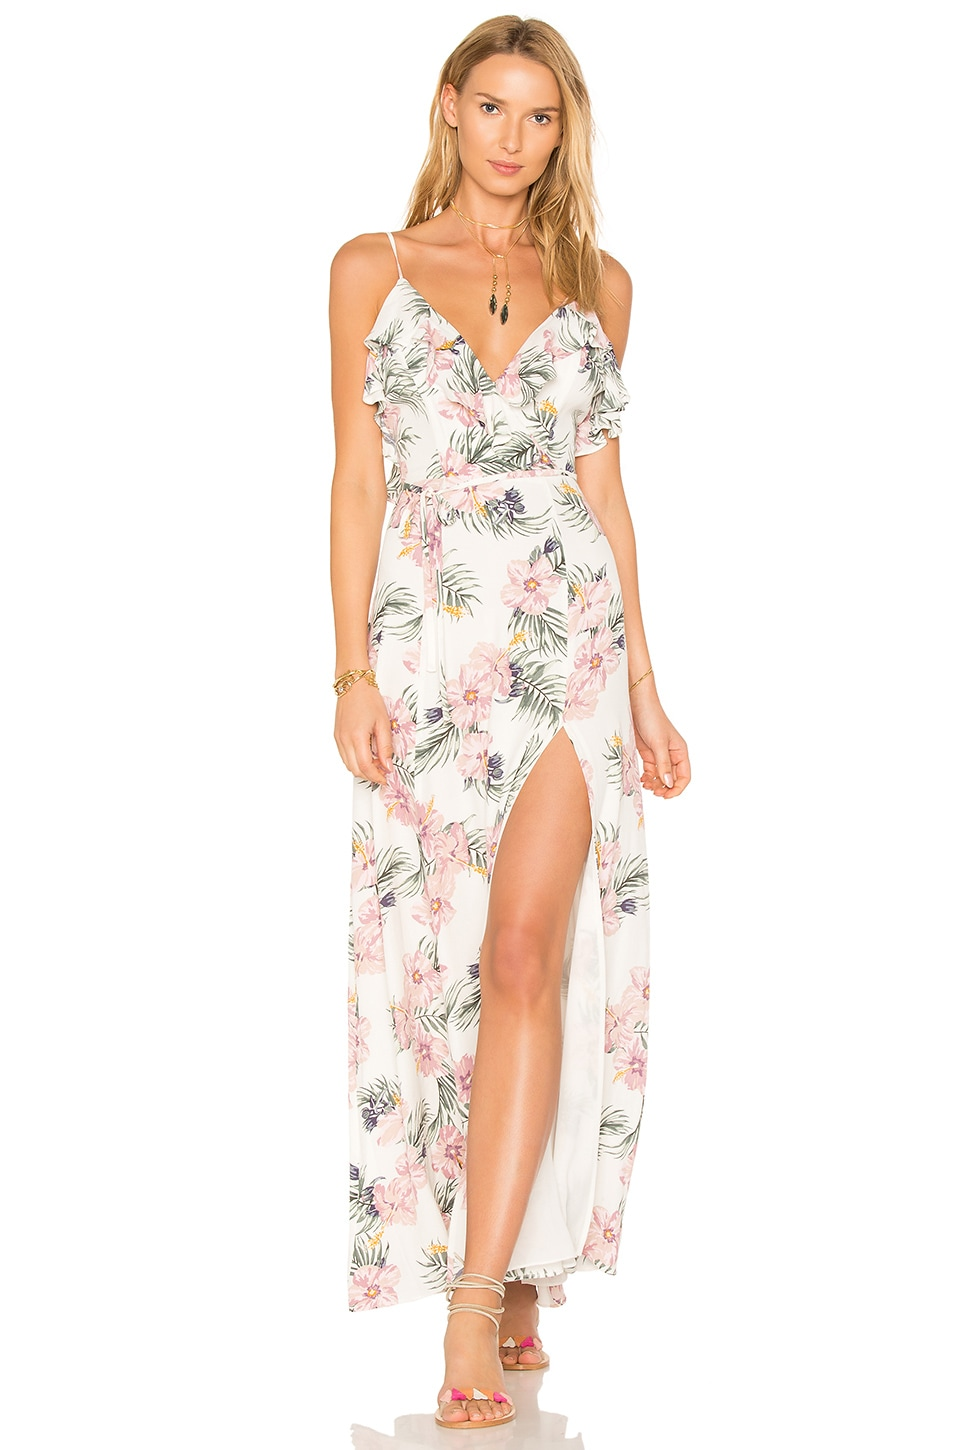 Privacy Please x REVOLVE Karen Dress in Purple Floral